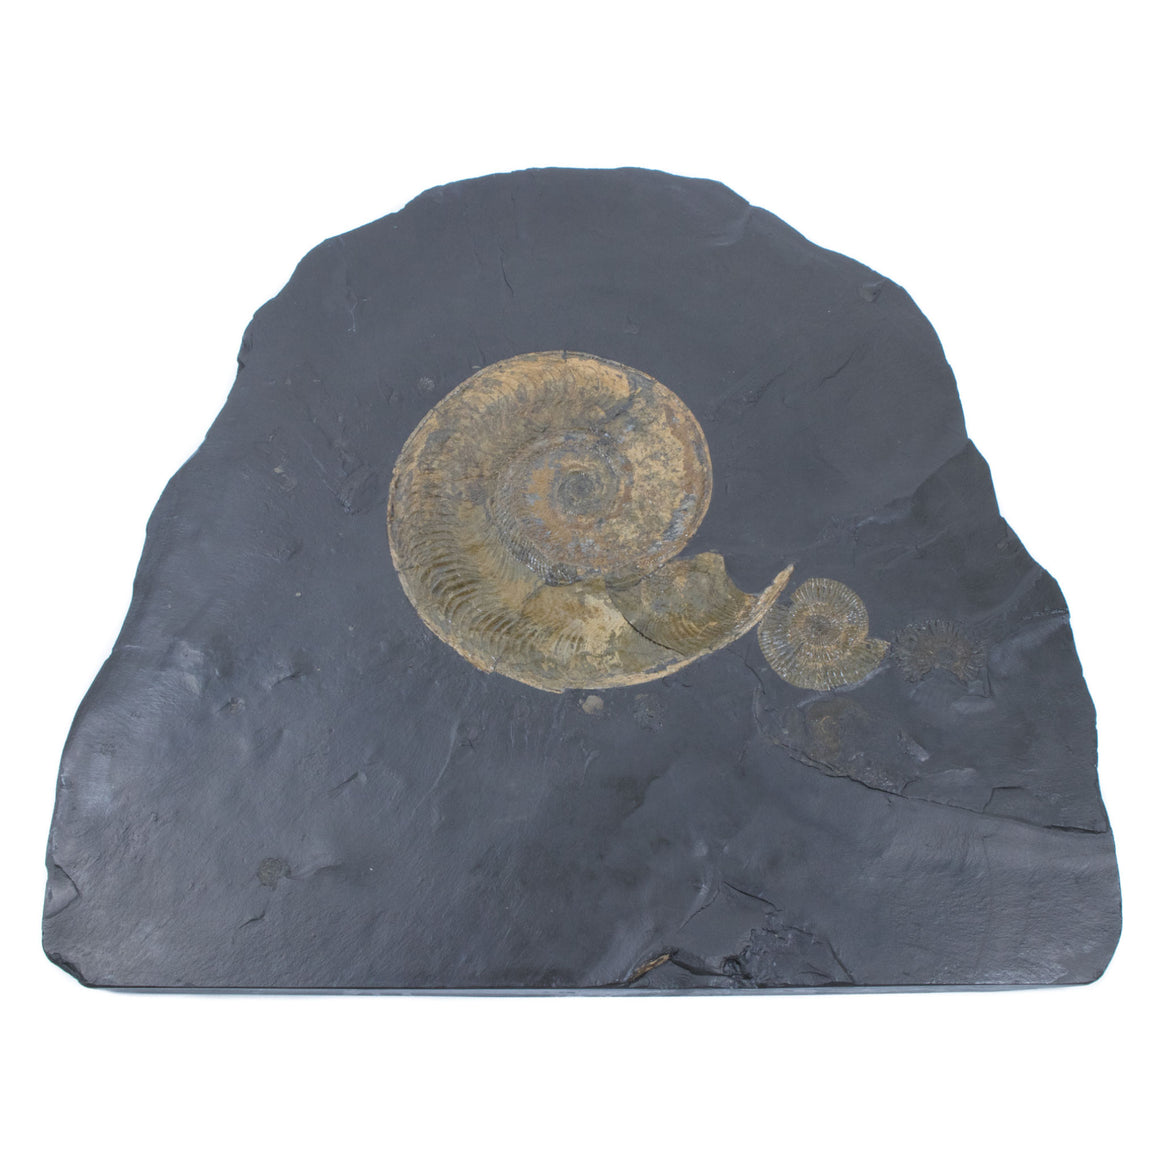 Large Ammonite Fossil Plate, Pyritized Ammonite - Harpoceras and Dactylioceras - Holzmaden Shale Fossil